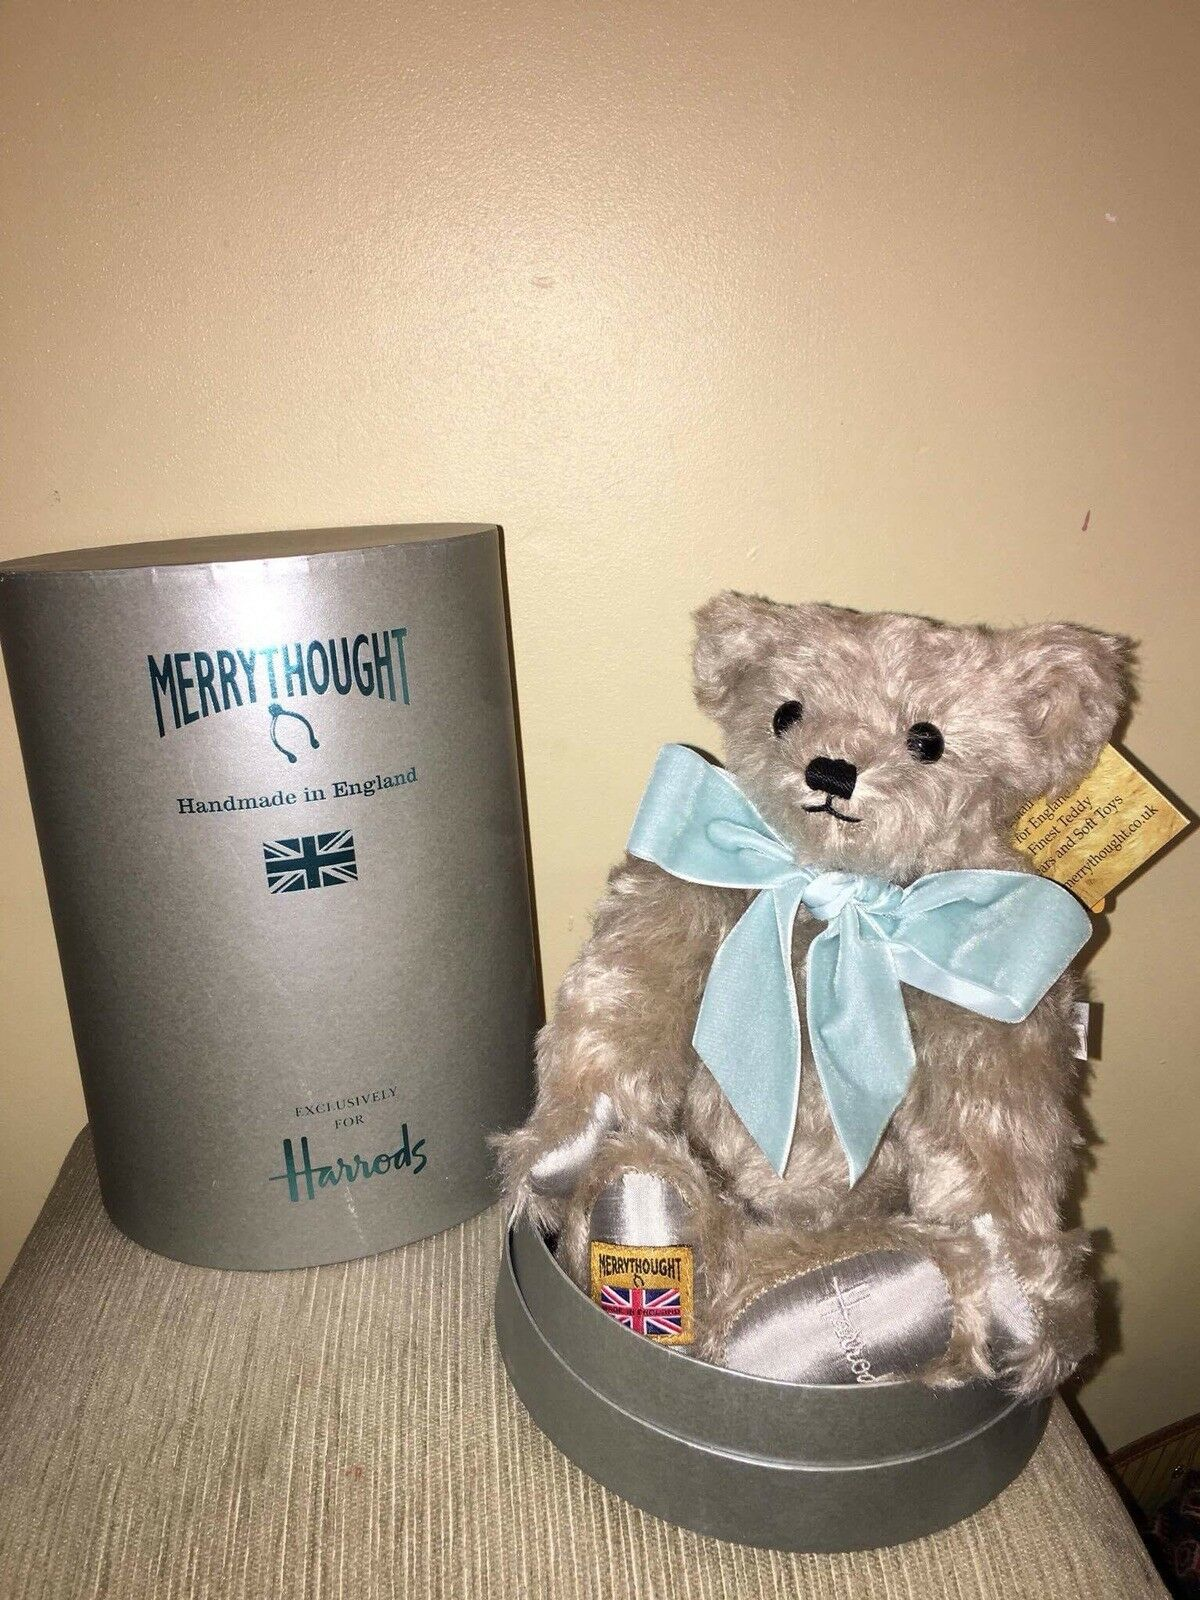 HARRODS NATALE ORSO Enorme 2016 Merrythought LIMITED EDITION DA COLLEZIONE